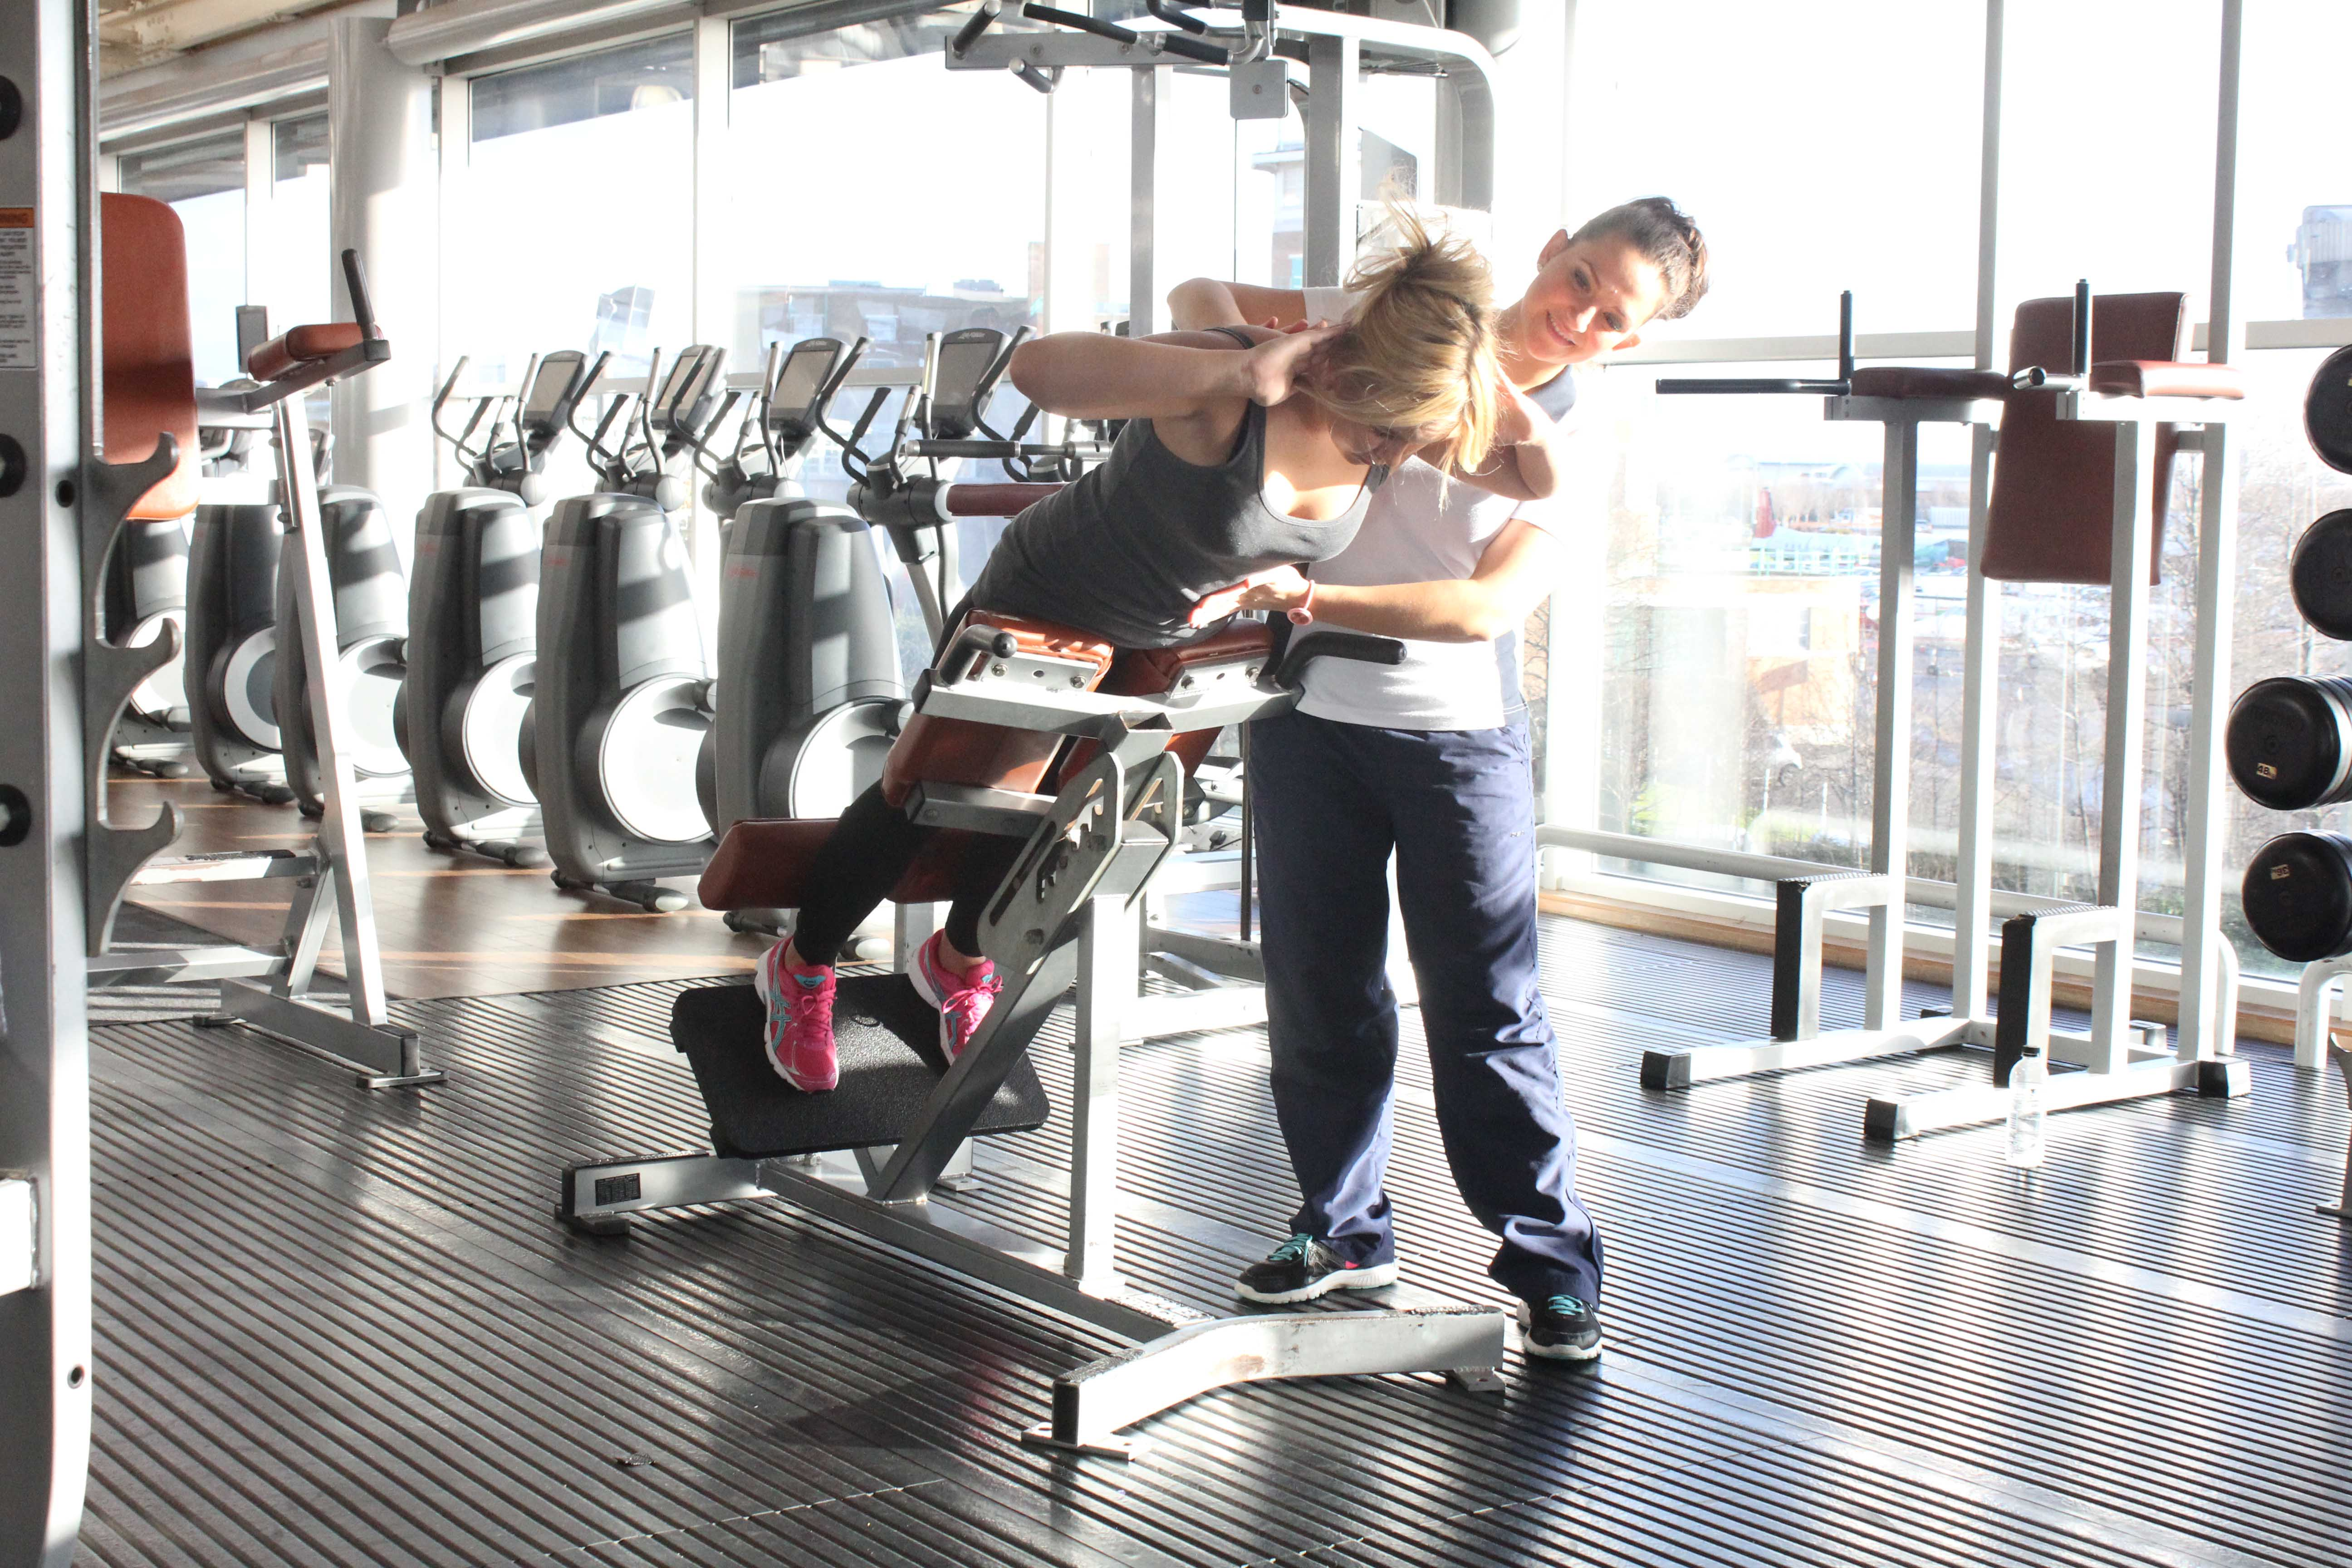 Progressive strengthening exercises for the lower back supervised by specialist MSK physiotherapist